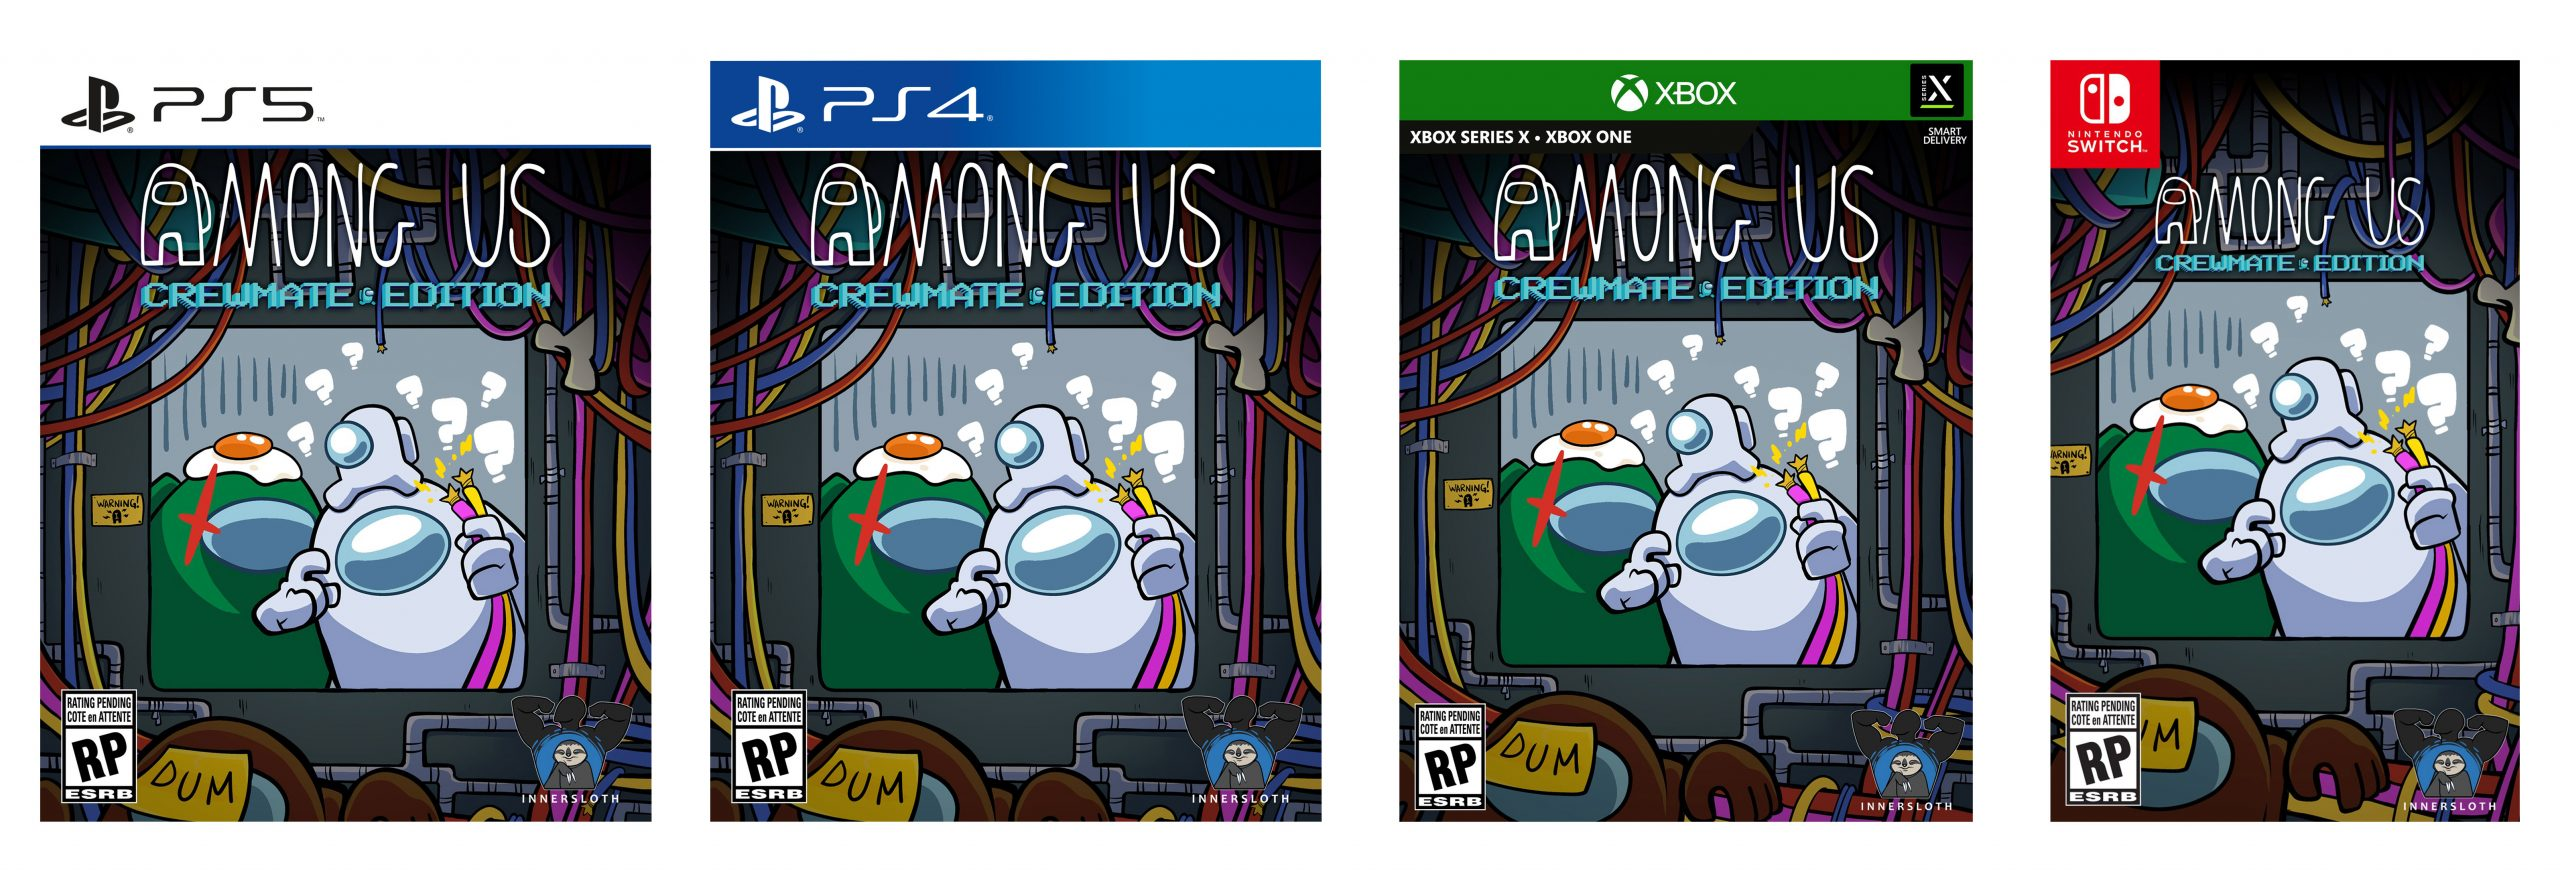 Among Us Collector's Edition annunciato per PS5, PS4, Xbox Series, Xbox One e Switch 1